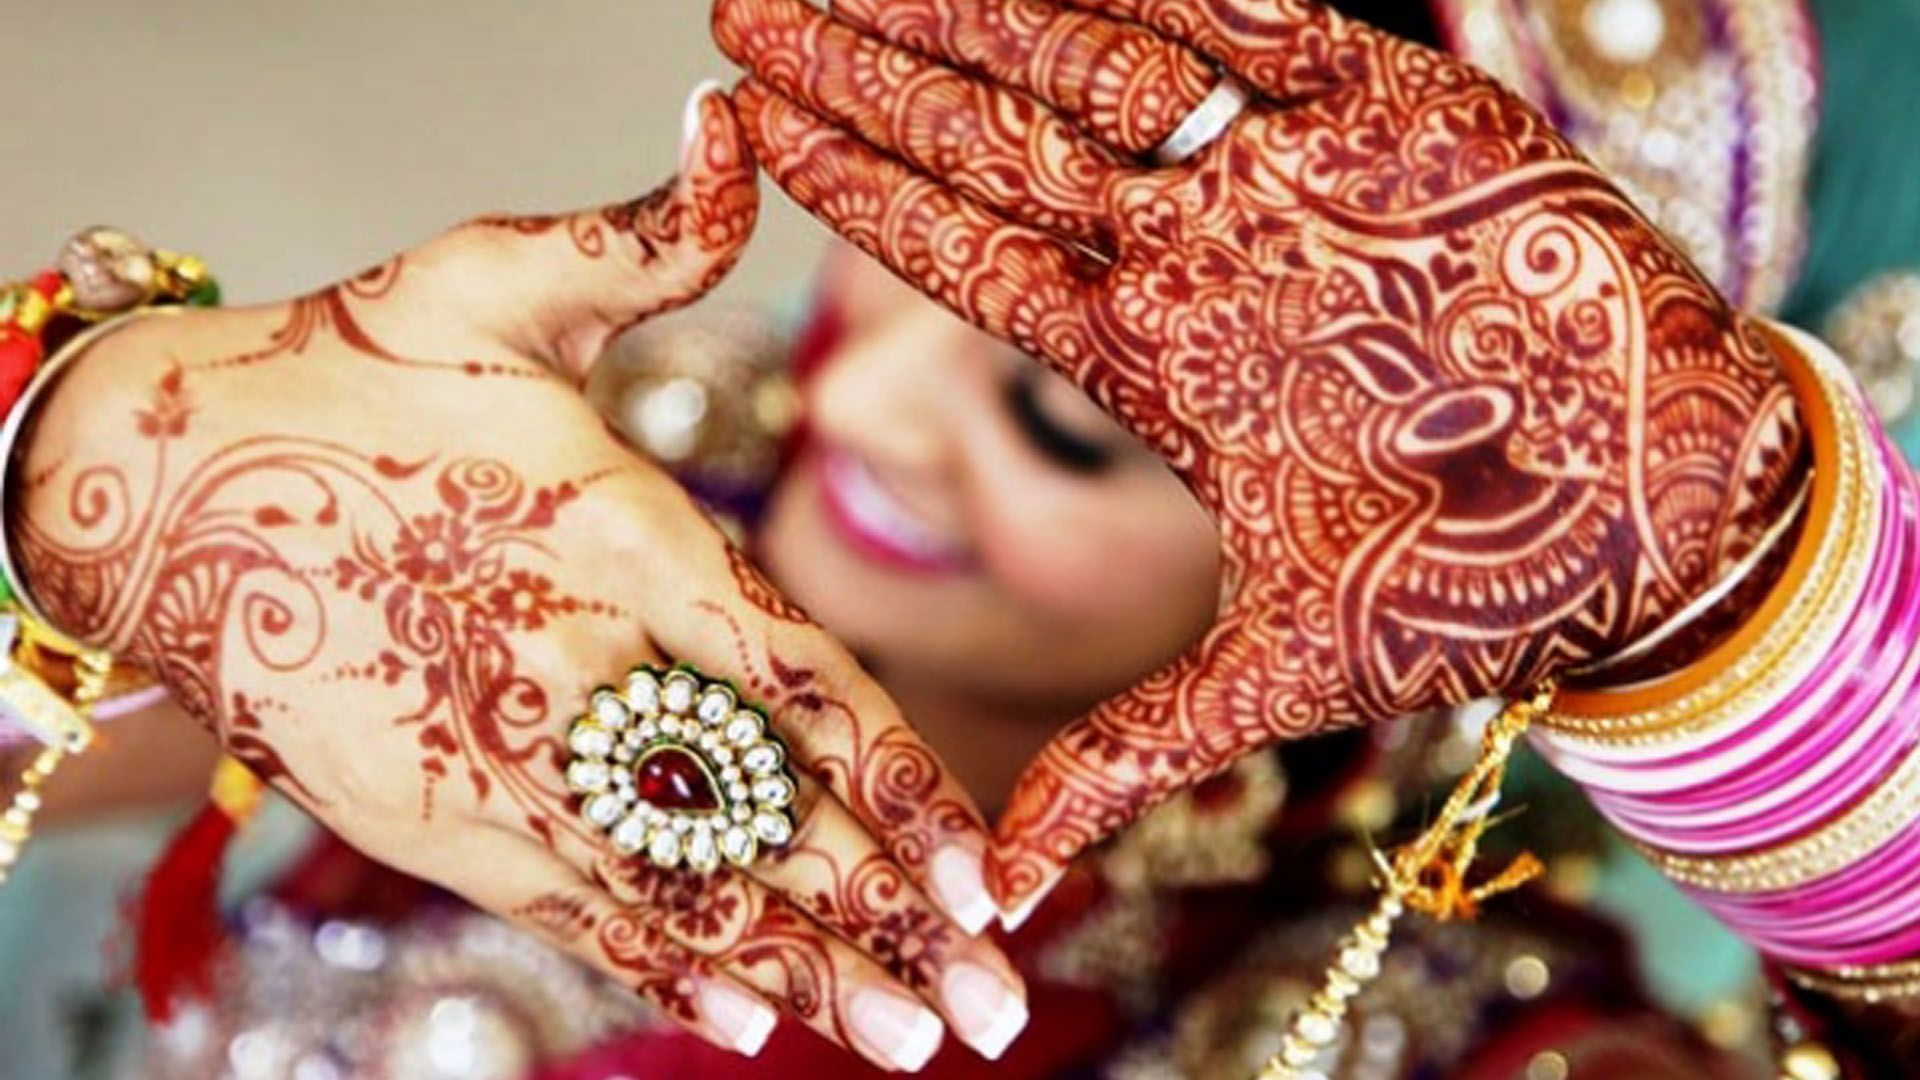 indian wedding wallpapers high quality resolution for hd wallpaper